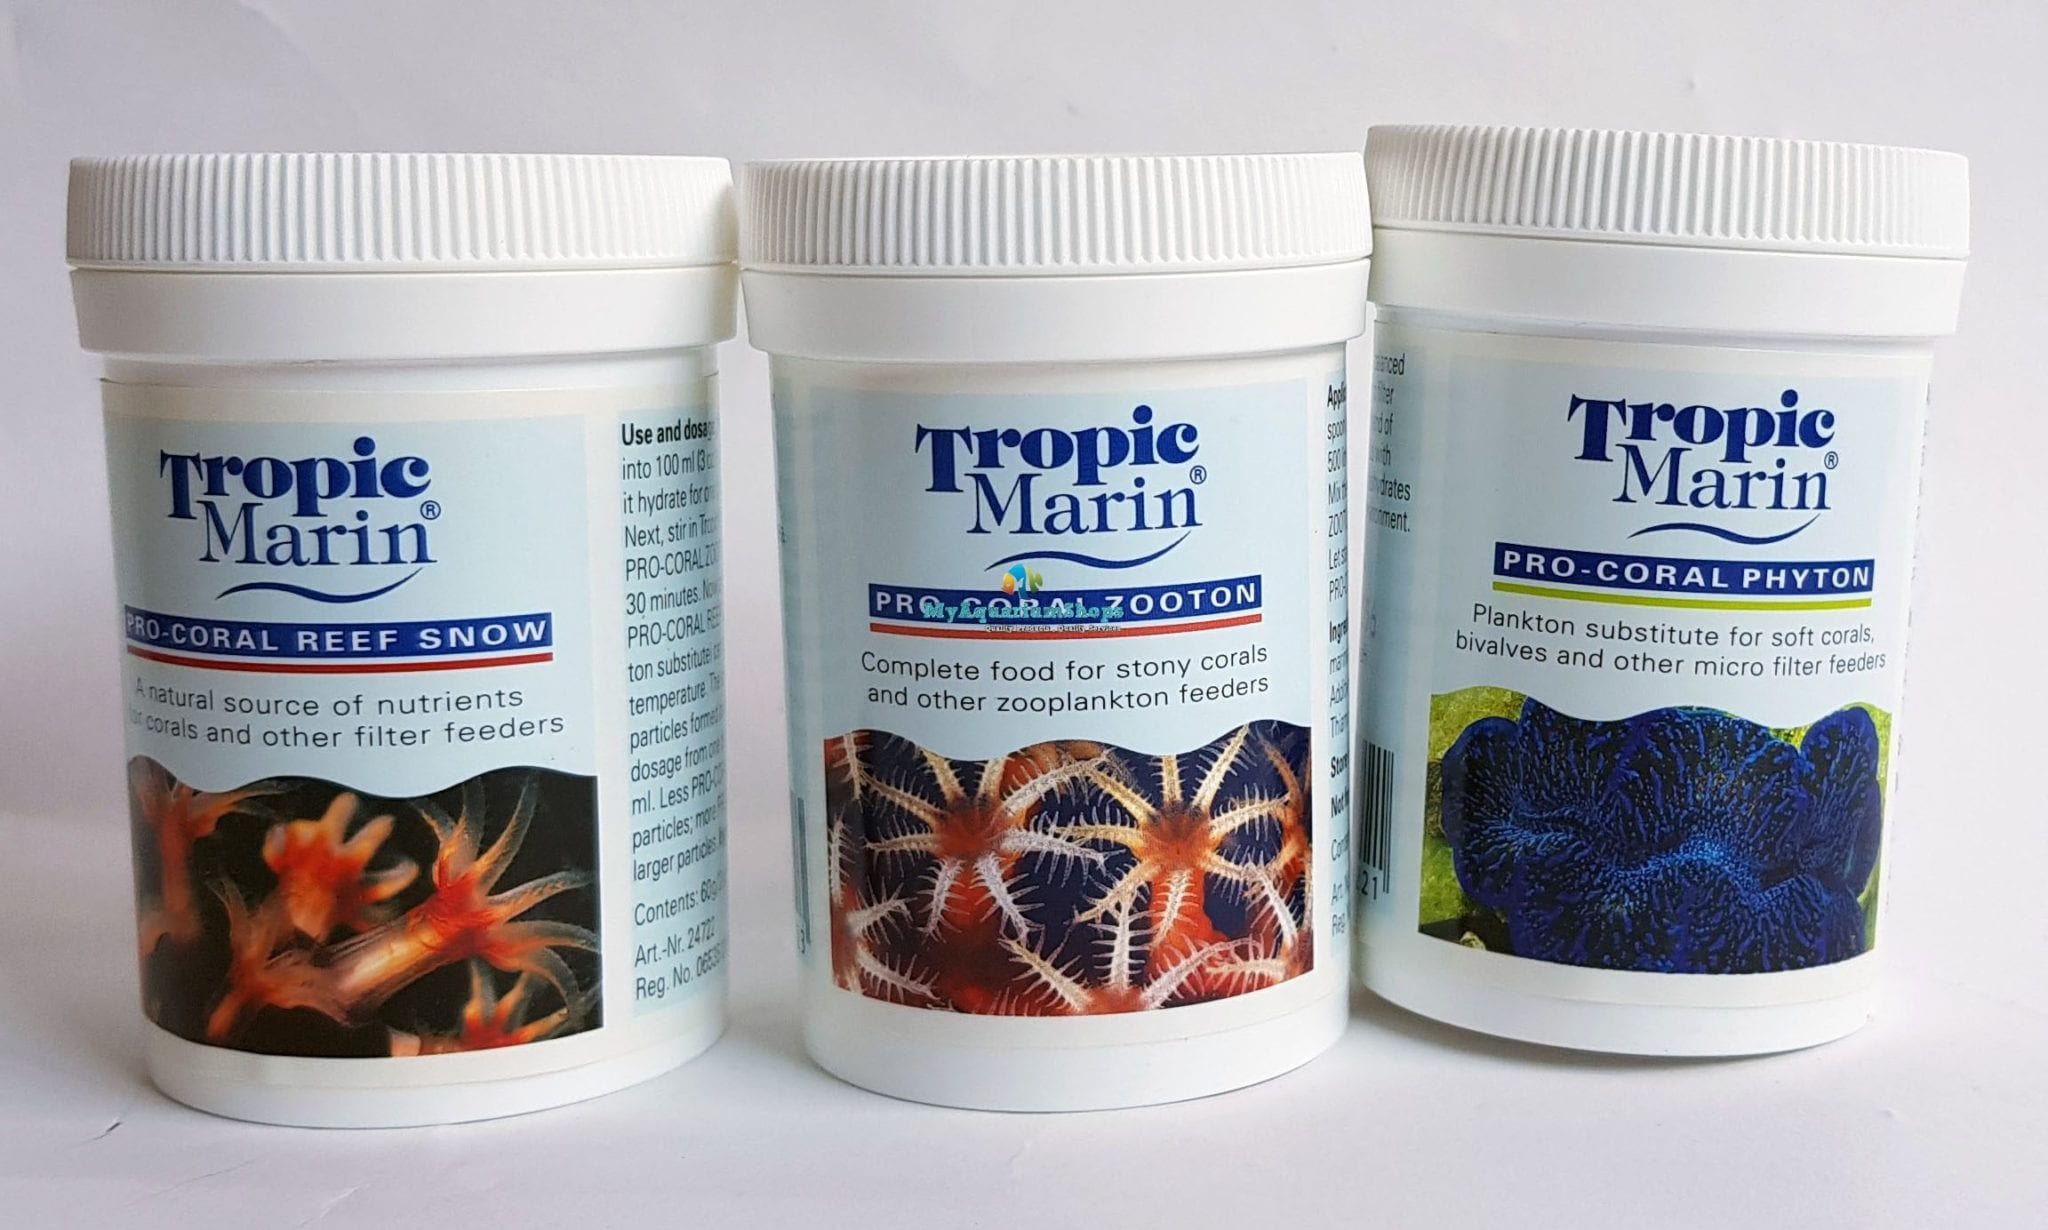 Tropic marin archives myaquariumshop online store for Online fish stores